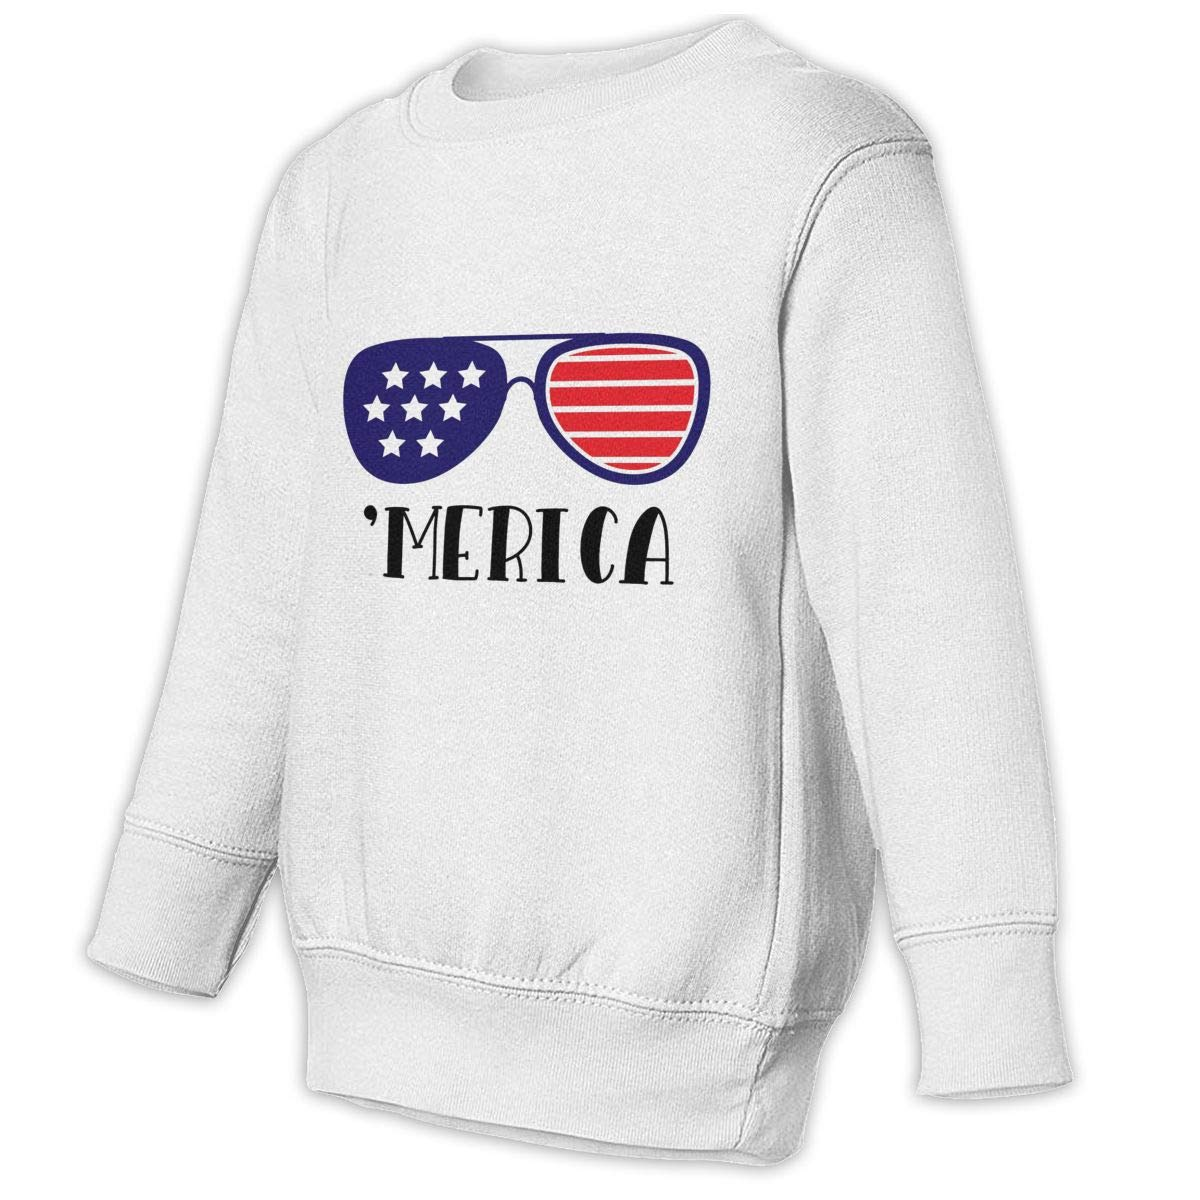 GHYNJUM Merica Sunglasses Kids Unisex Cotton Long Sleeve Round Neck Pullover